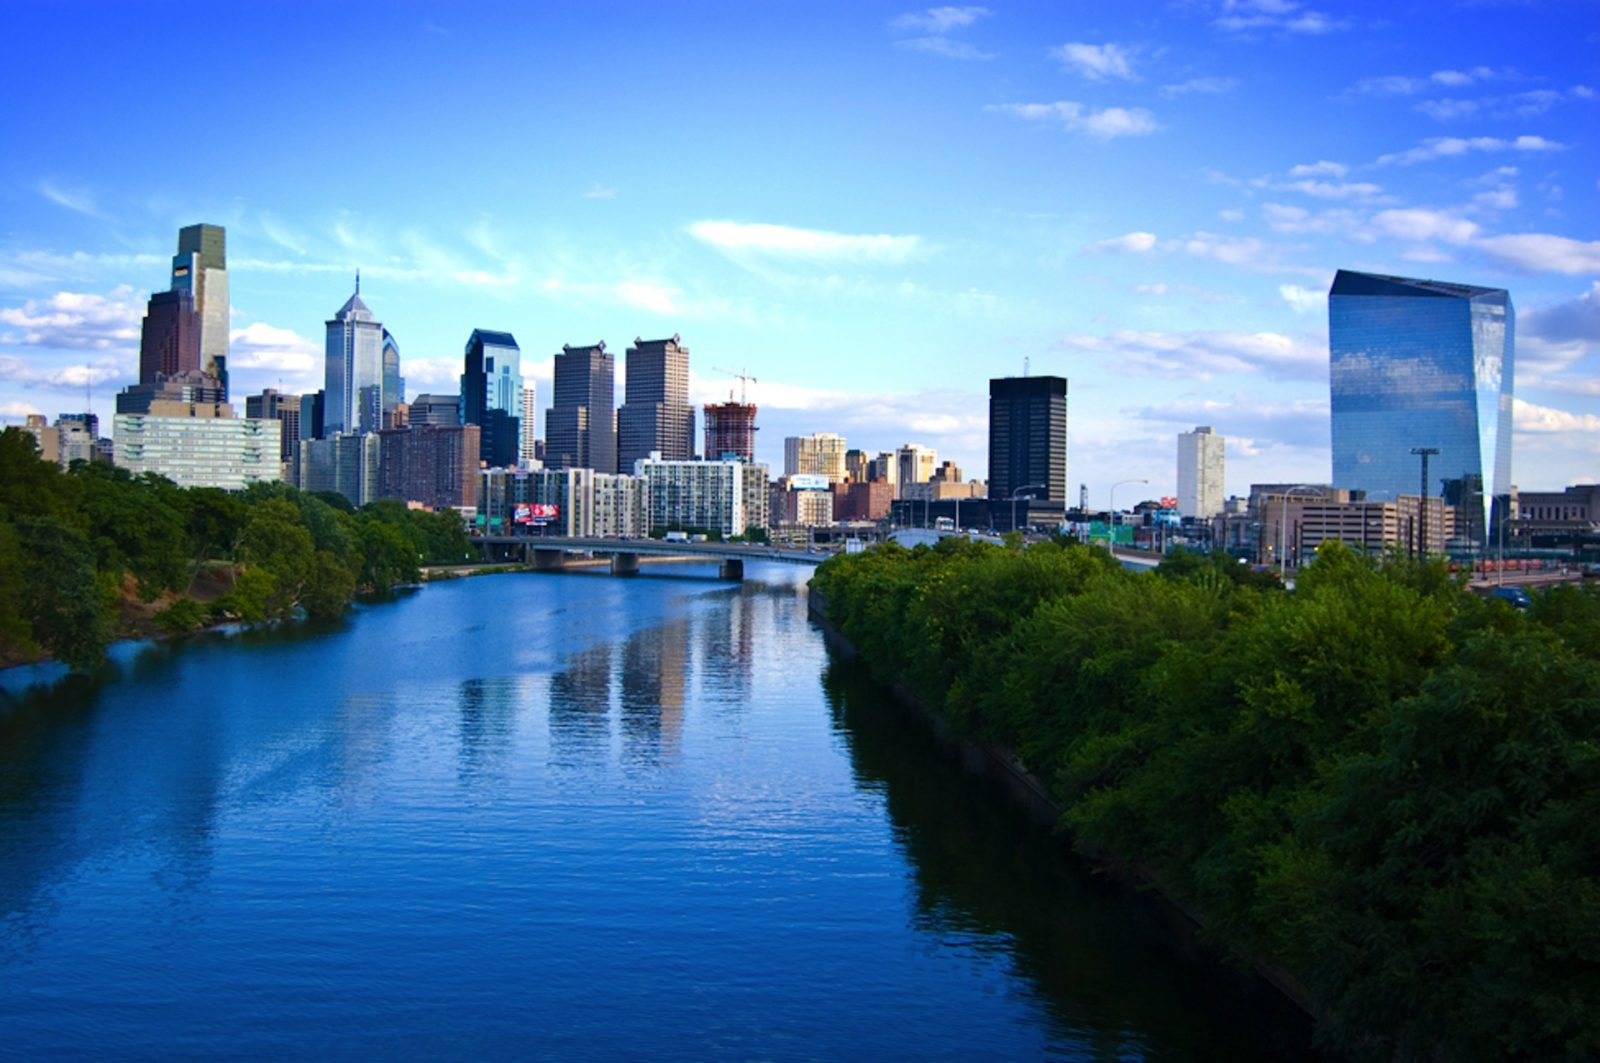 Top Attractions And Things To Do In Philadelphia, Pennsylvania